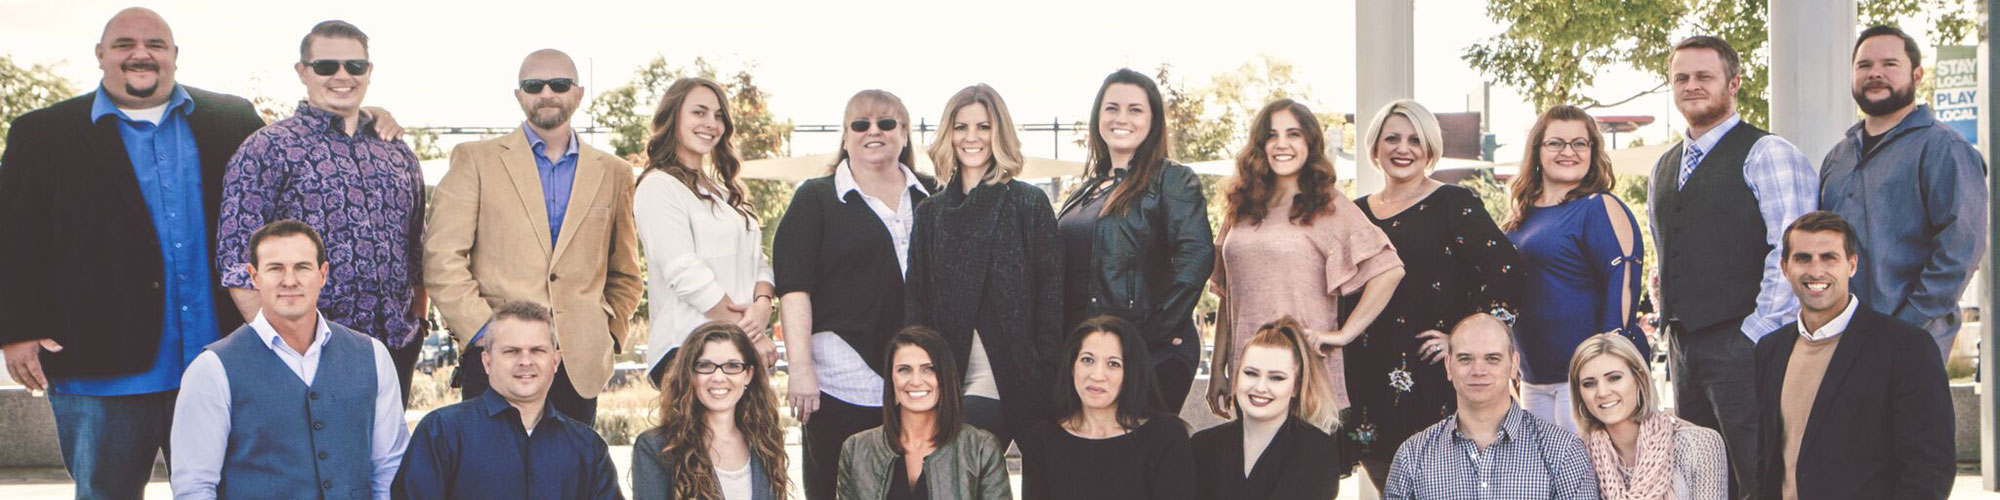 Image of the insurance agents and staff at Focus1 Insurance Group based in Portland, Bend, and Medford, OR